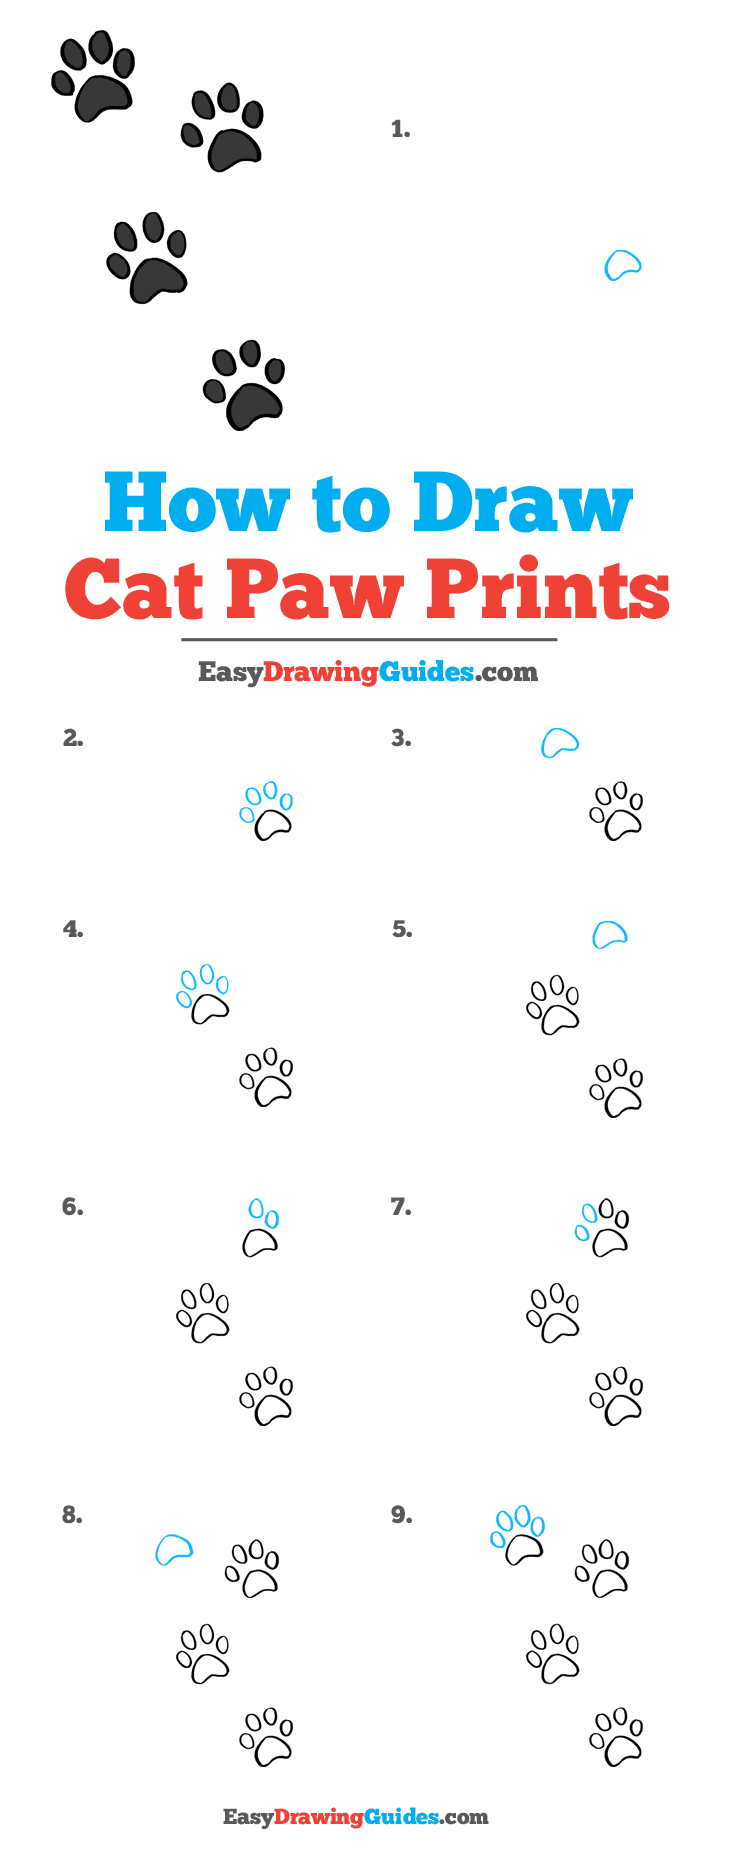 How to Draw Cat Paw Prints